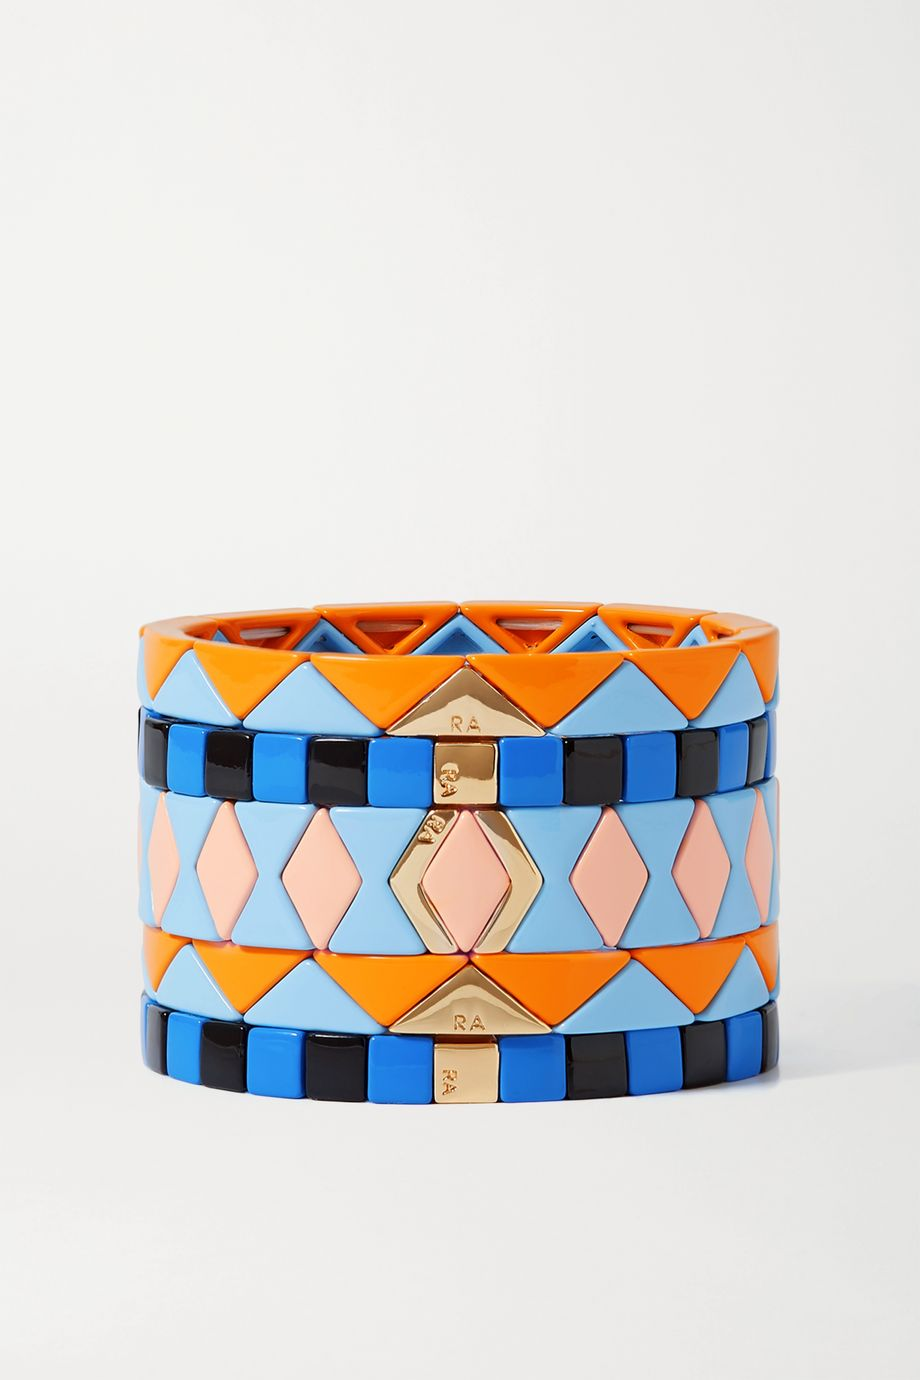 Roxanne Assoulin Nemo set of five enamel and gold-tone bracelets